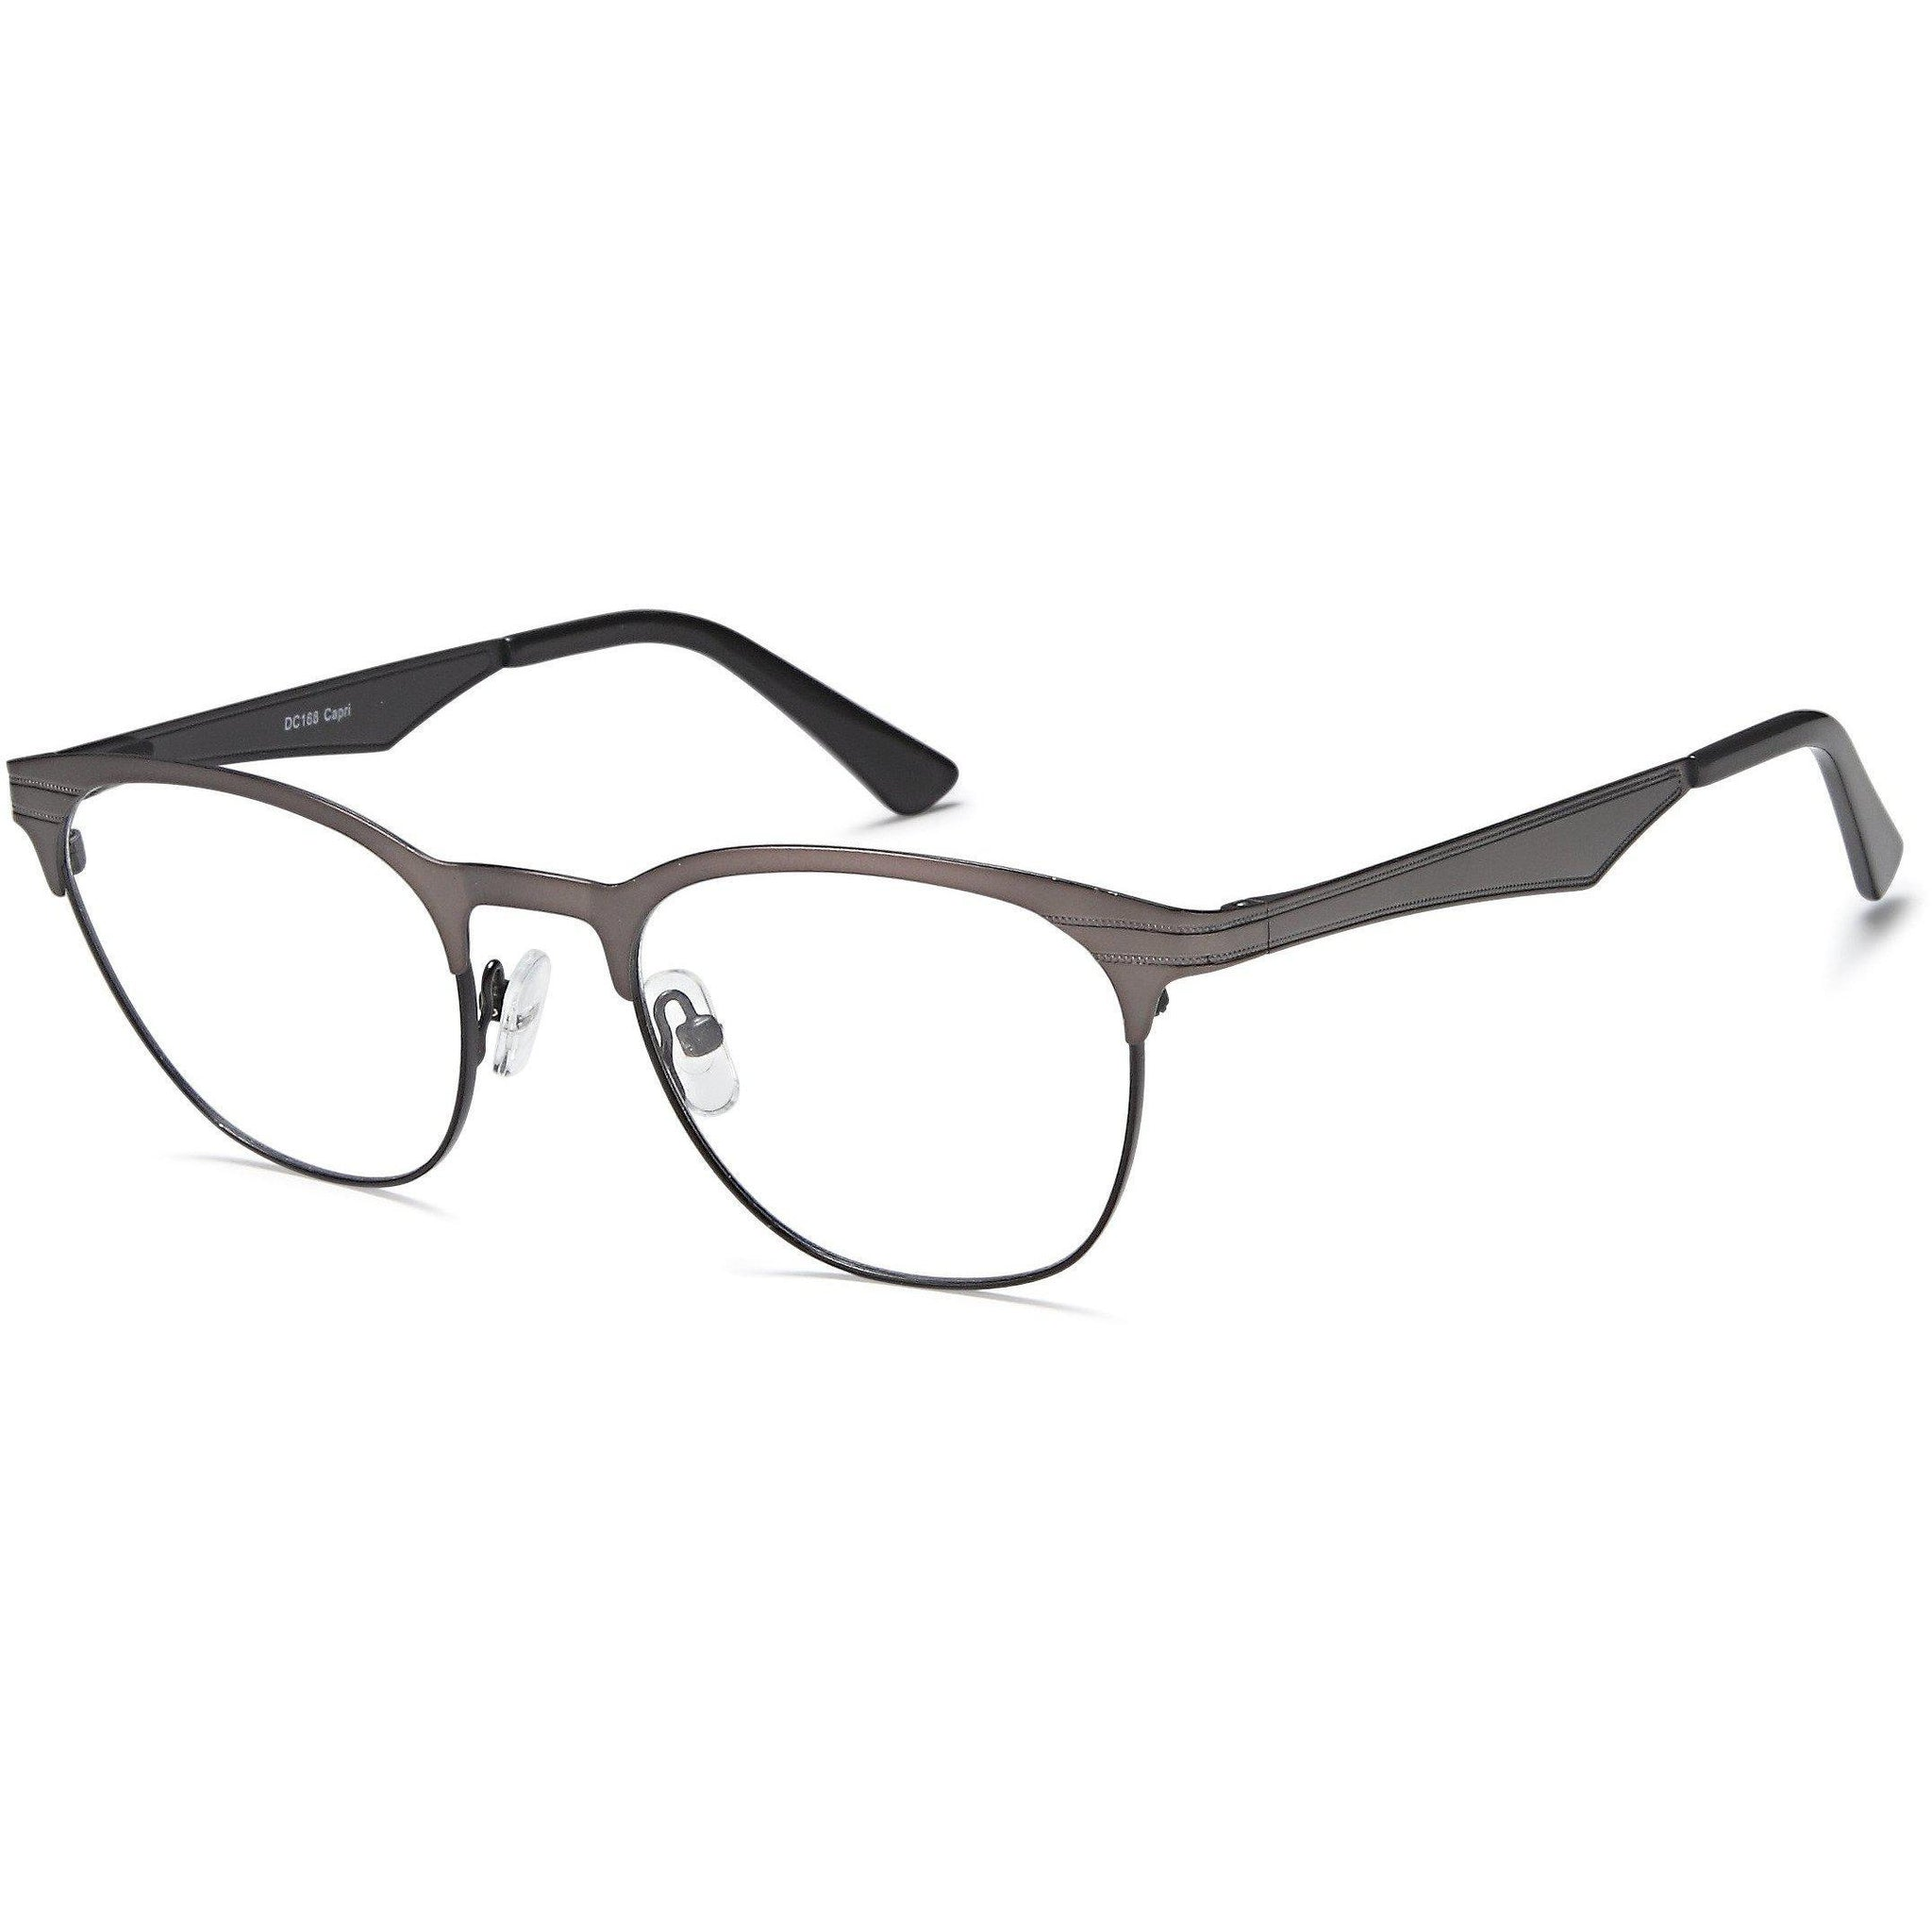 Di Caprio Prescription Glasses DC 168 Eyeglasses Frame - timetoshade